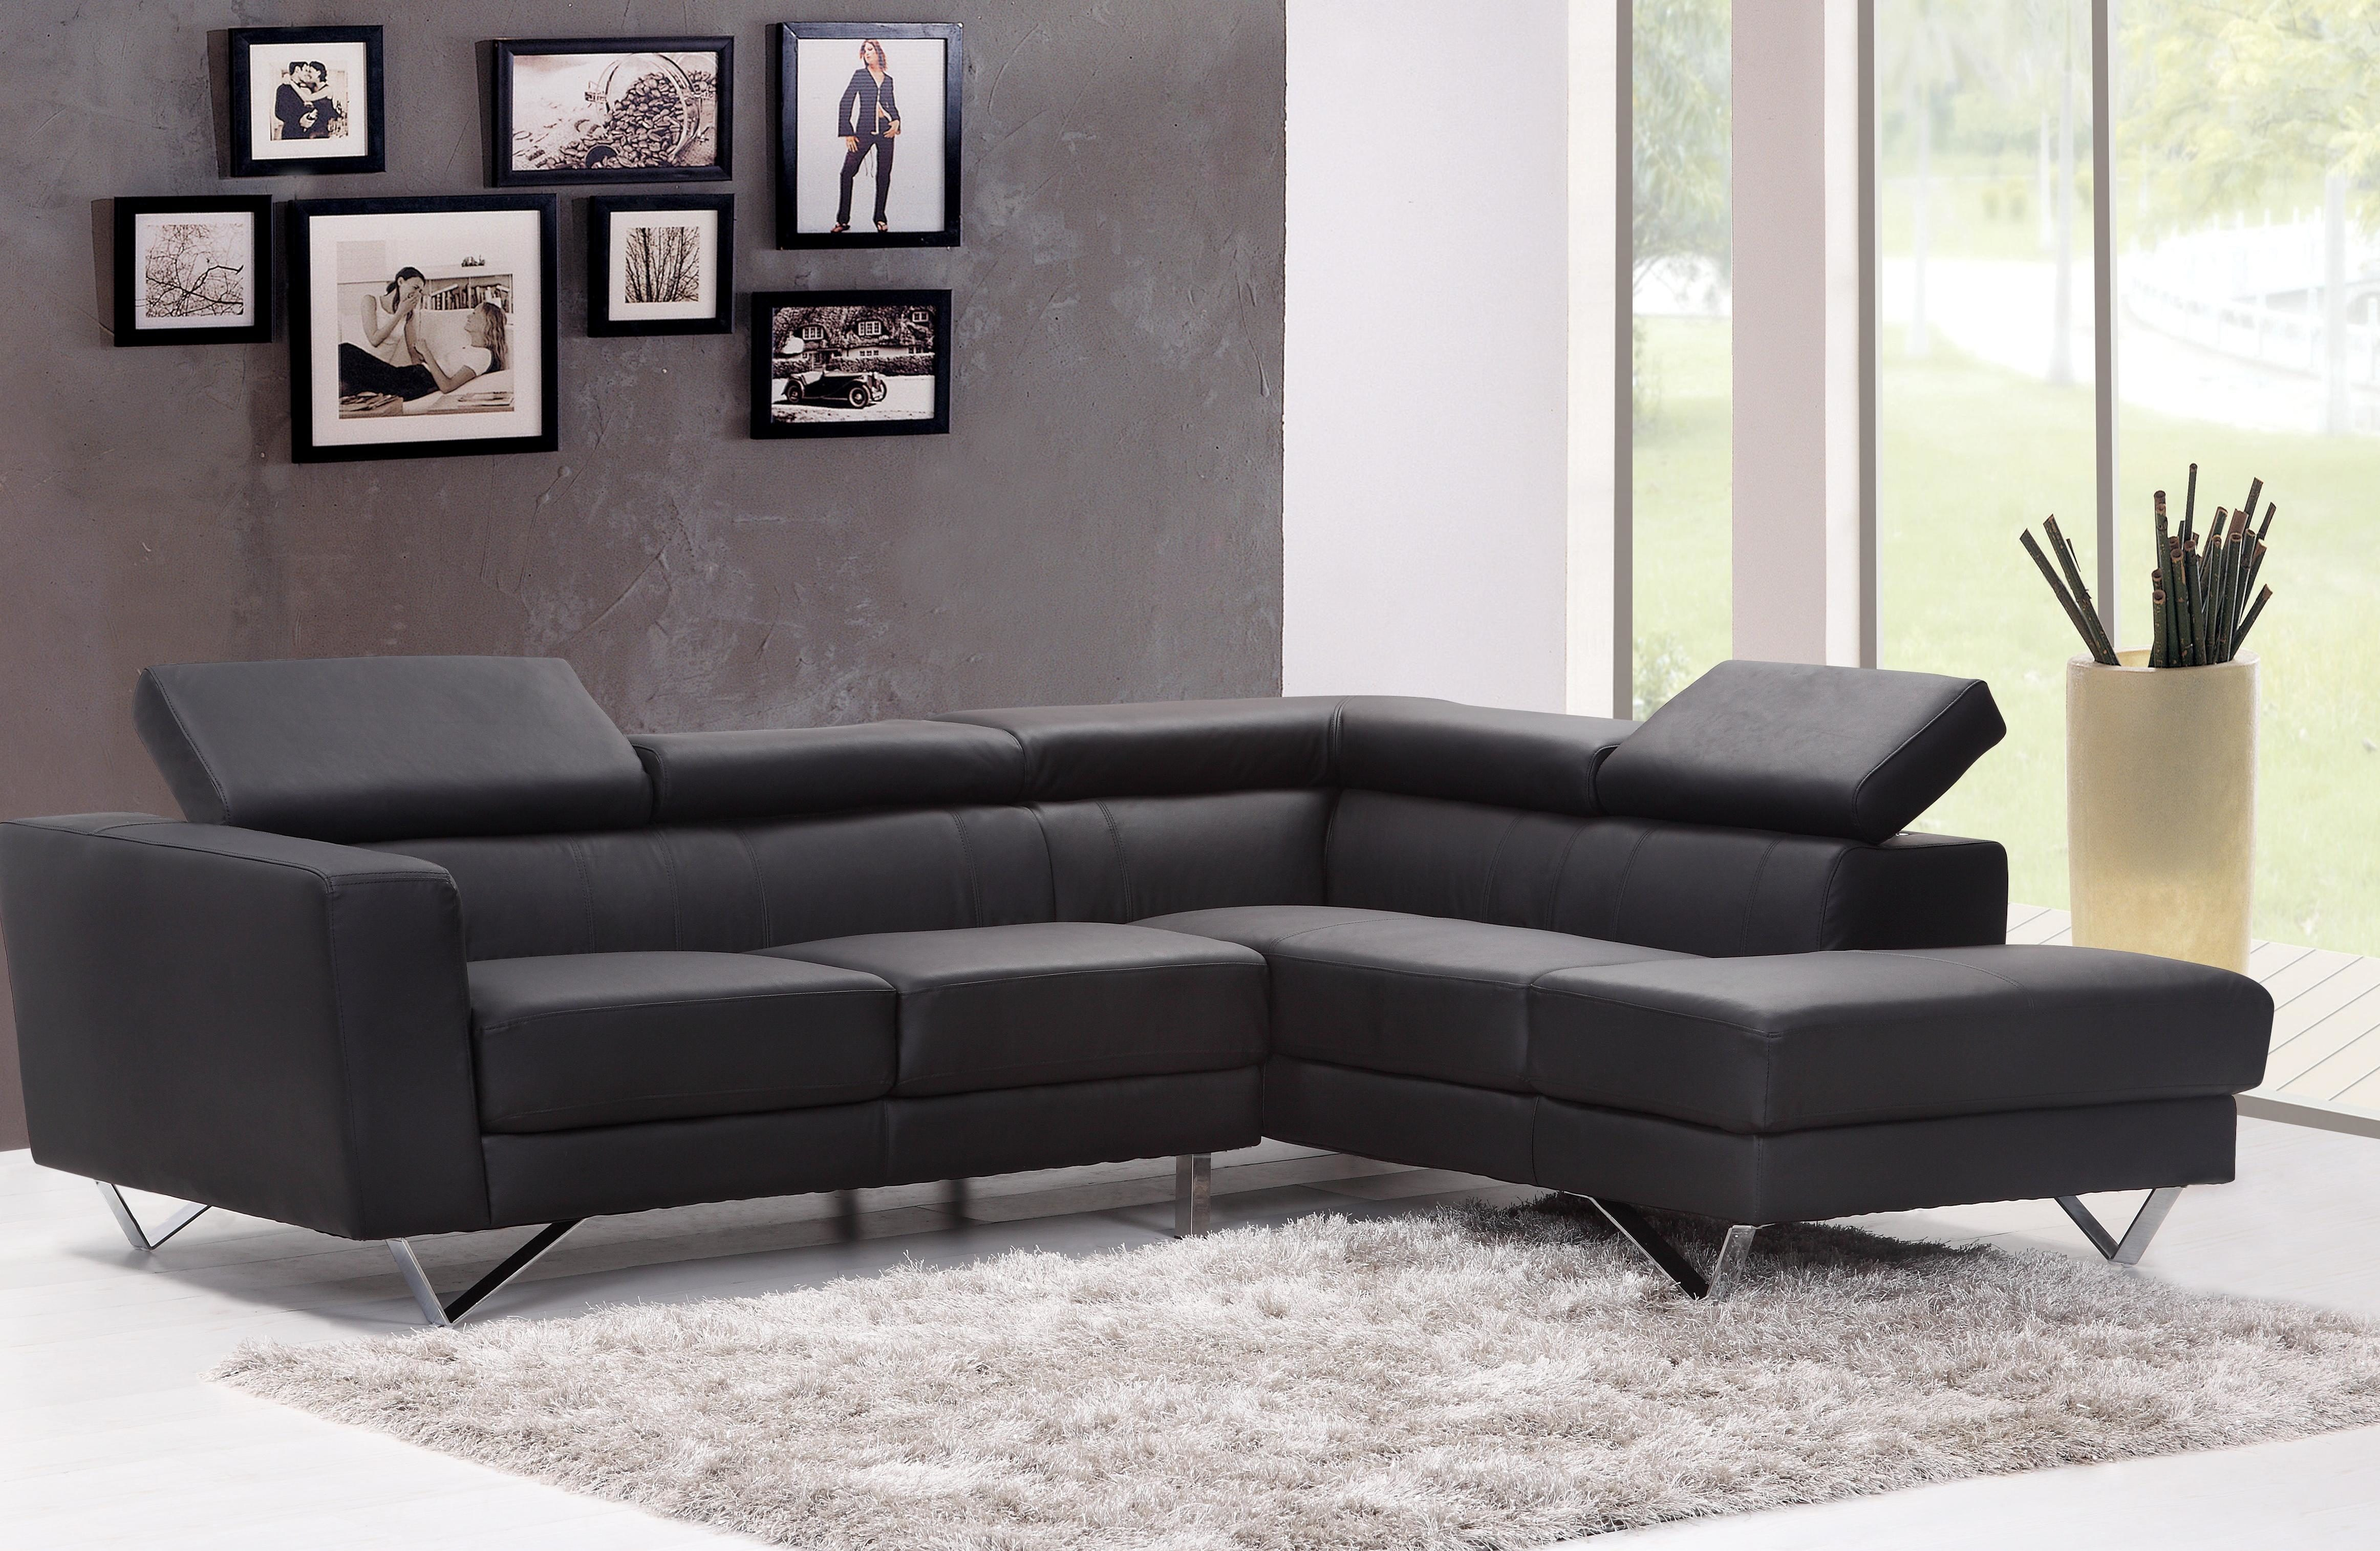 Free picture sofa furniture room indoors chair decor for Decoration contemporaine interieur